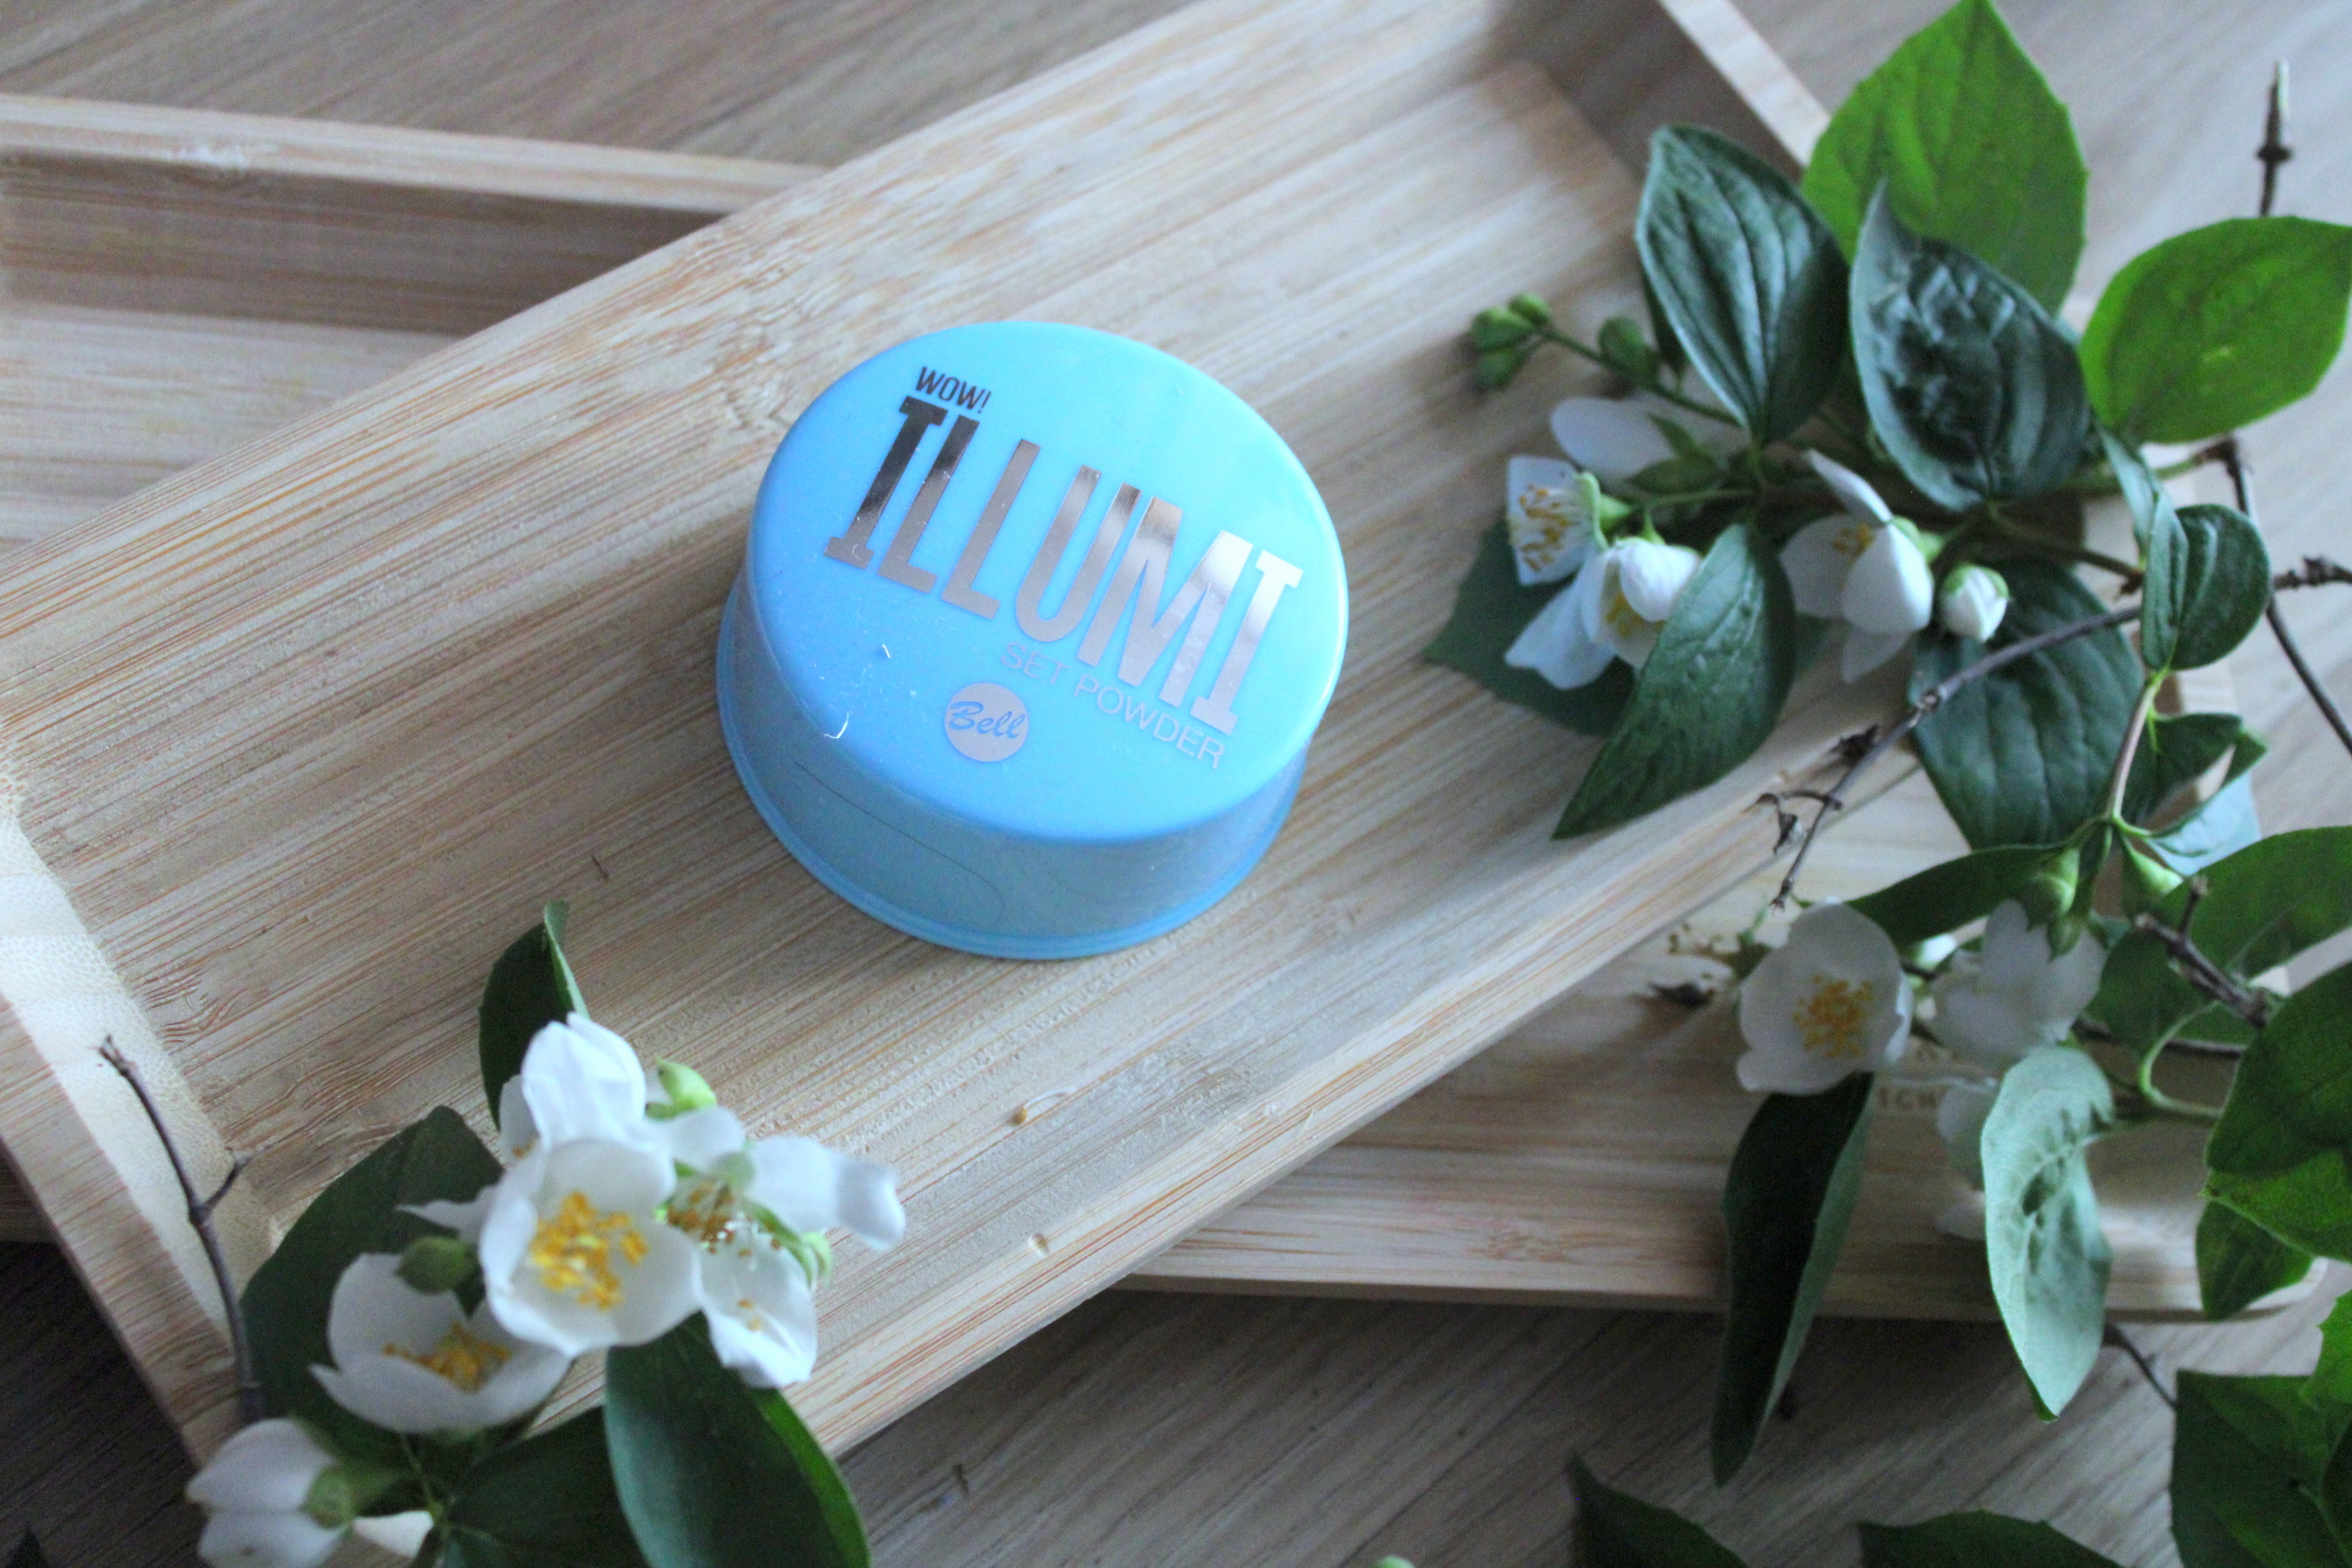 Illumi Set Powder Bell Cosmetics